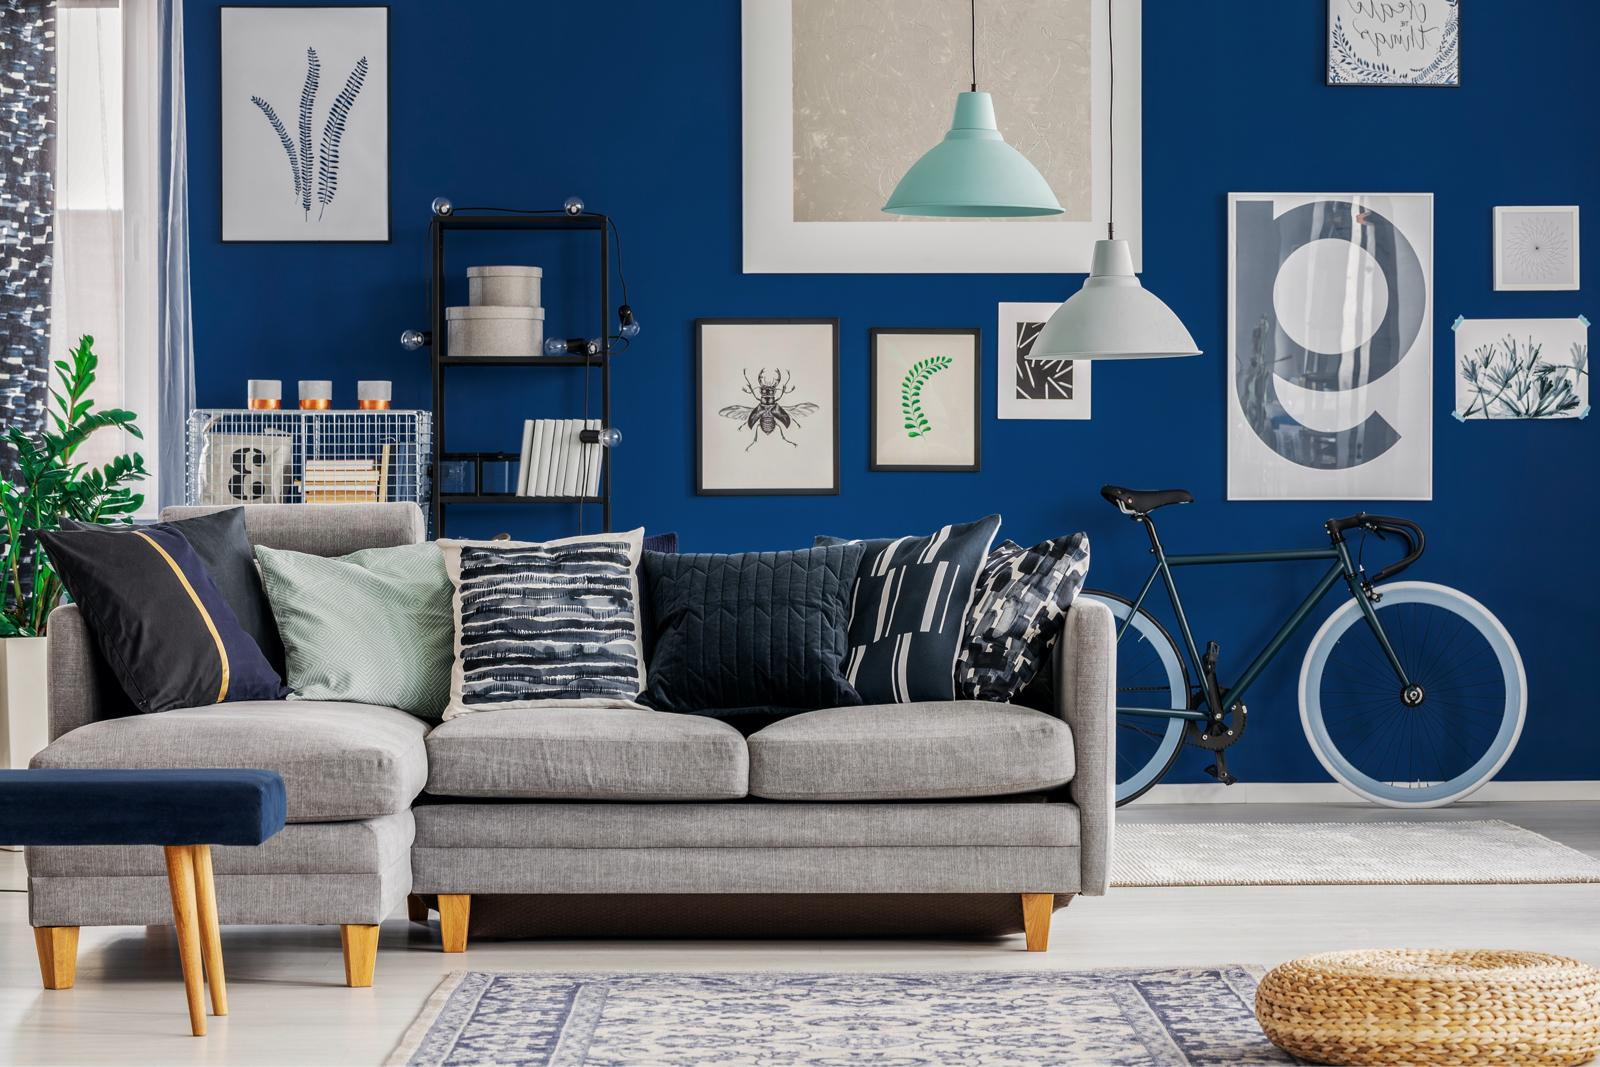 Maximalism Style And Why We Love It 3, Paneling Factory Of Virginia